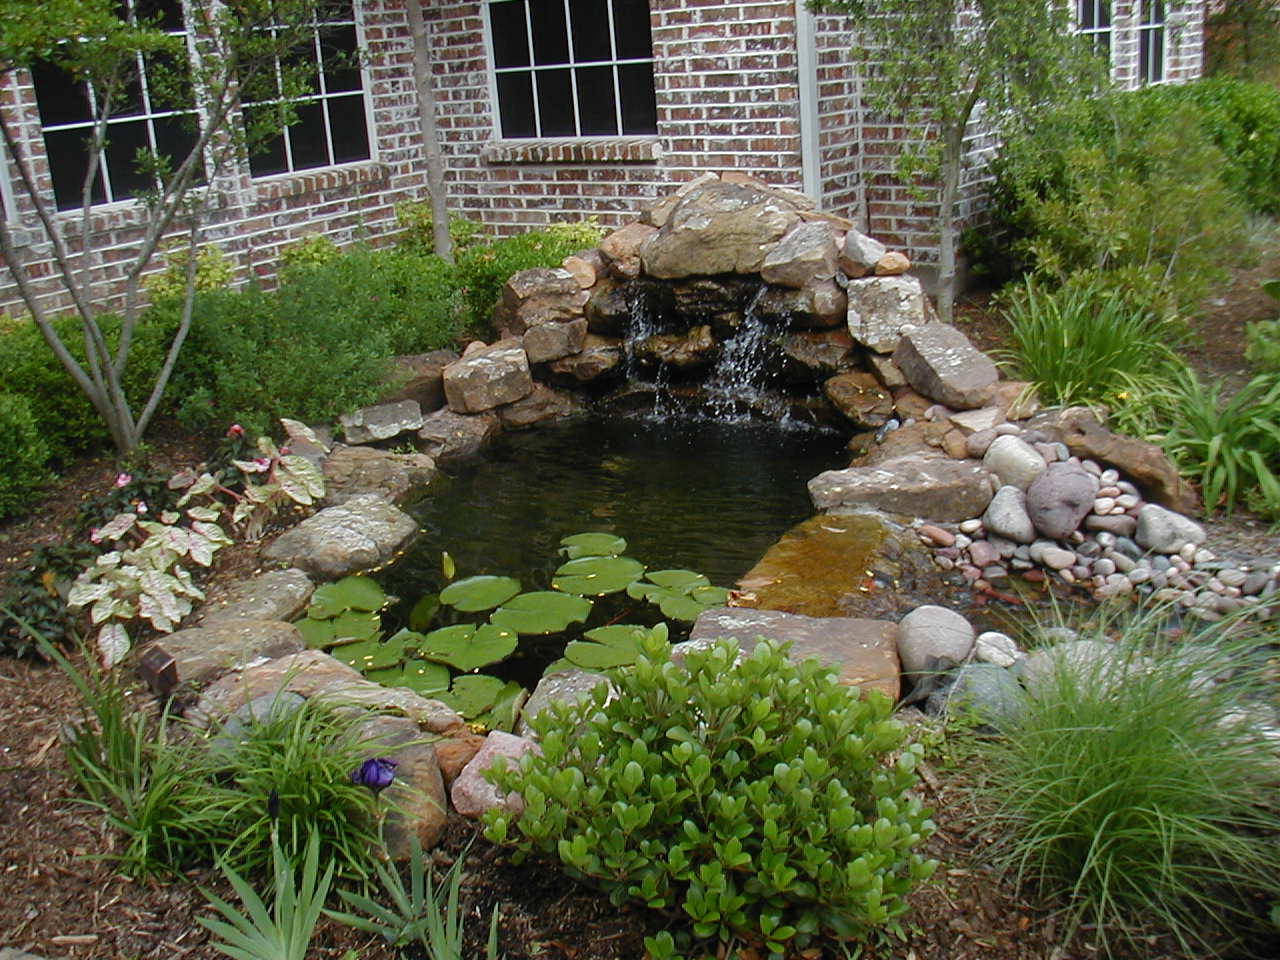 Xterieurdesign about us for Garden pond waterfall ideas